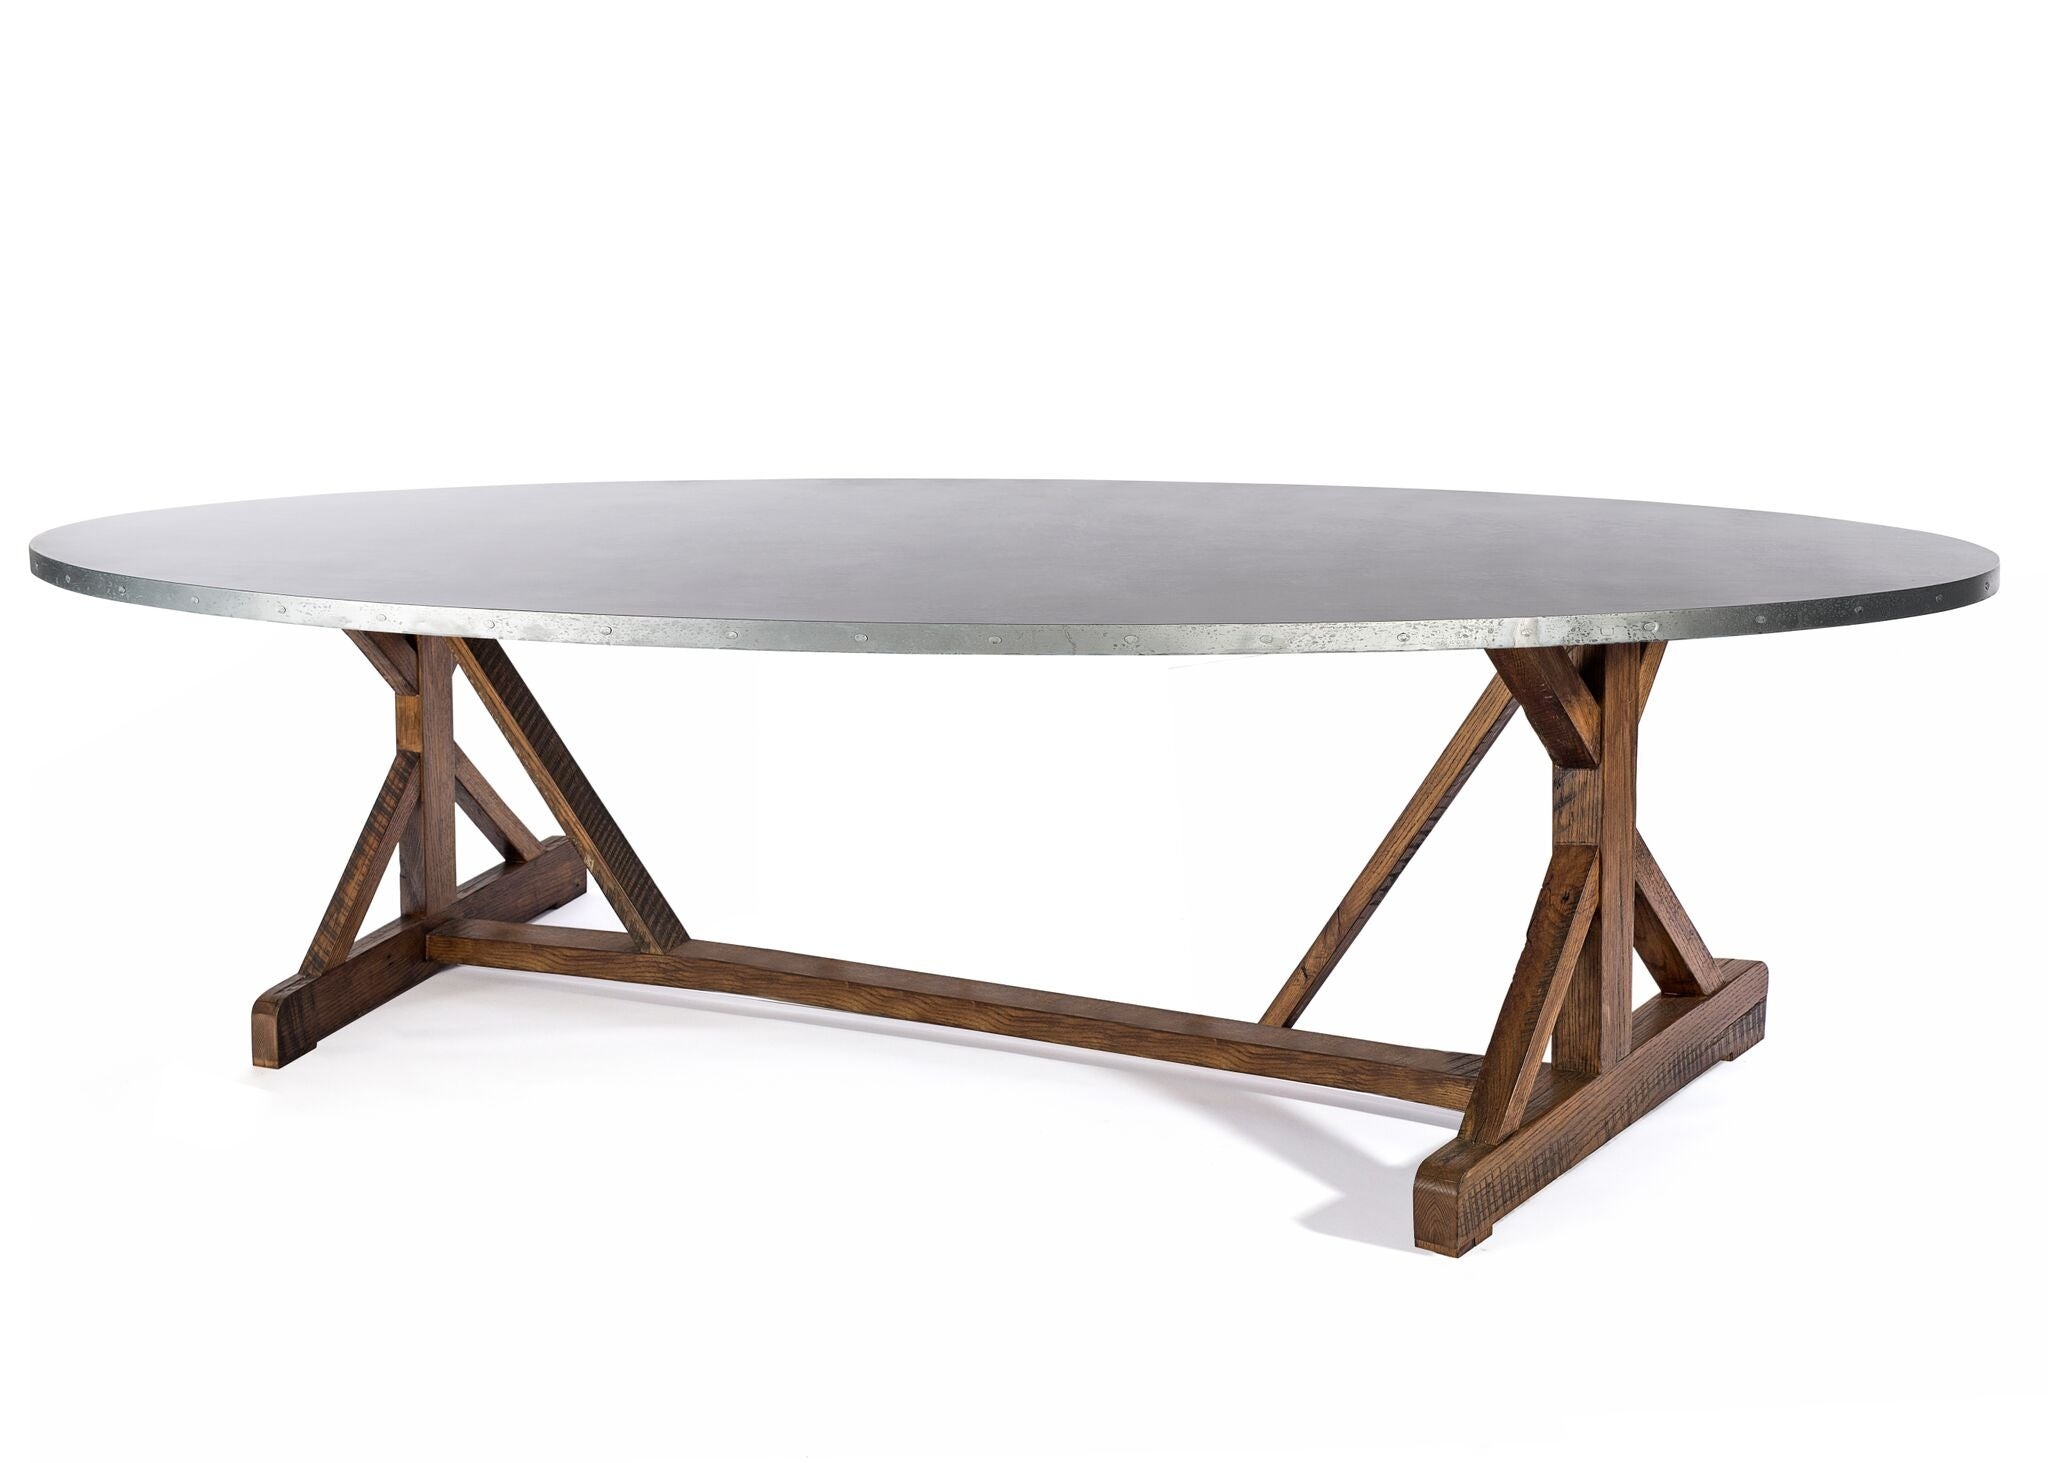 "Zinc Oval Tables | French Trestle Table | BLACKENED BRONZE | Americana on Reclaimed Oak | CUSTOM SIZE L 120 W 43 H 30 | 1.5"" Standard 